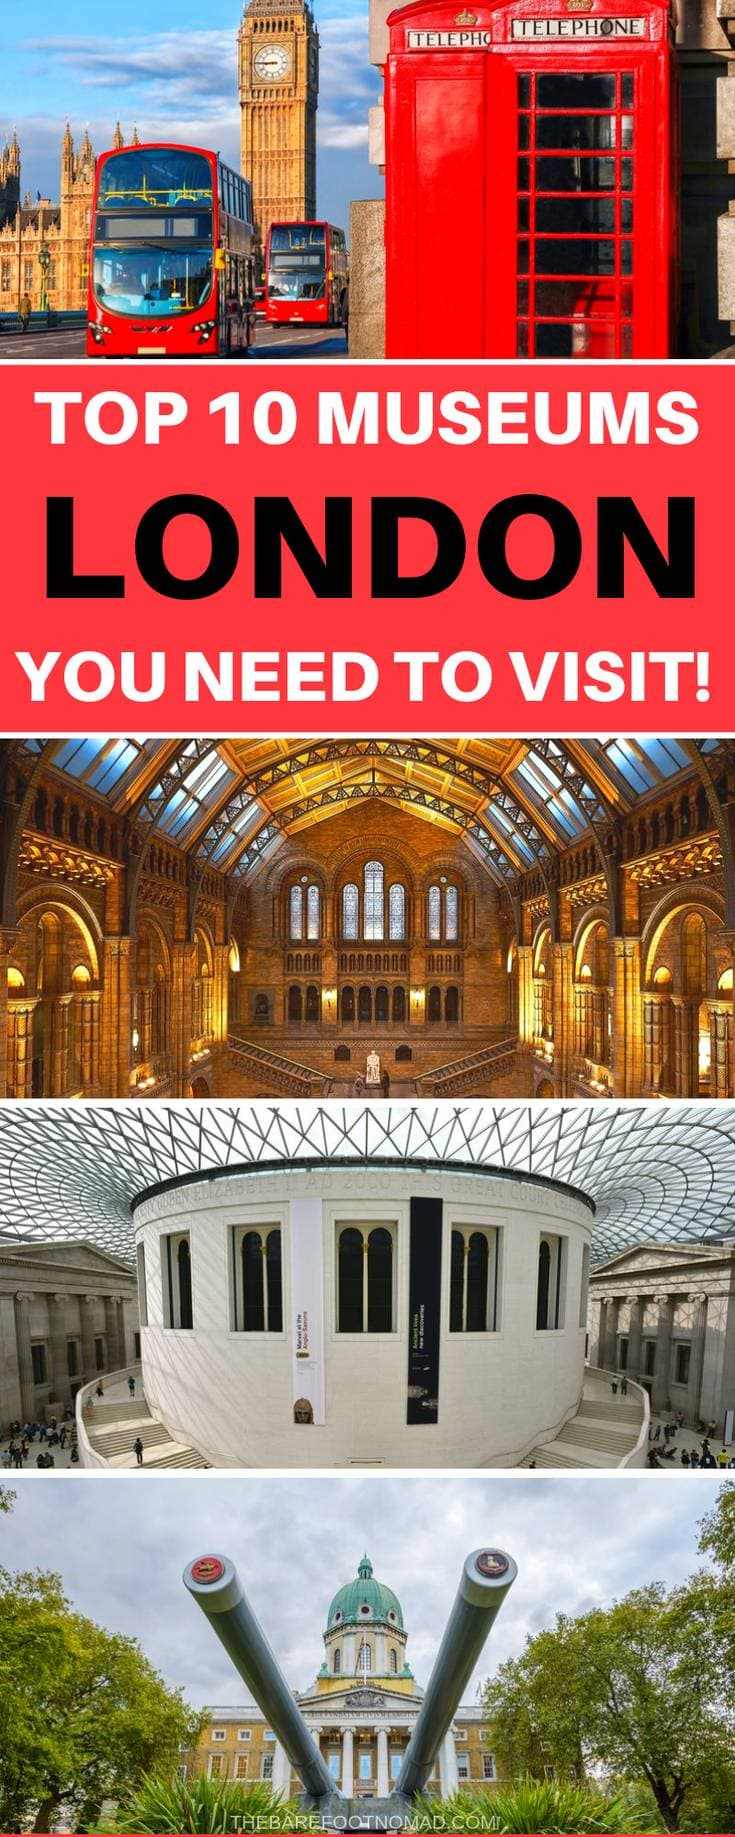 top 10 museums in London you need to visit